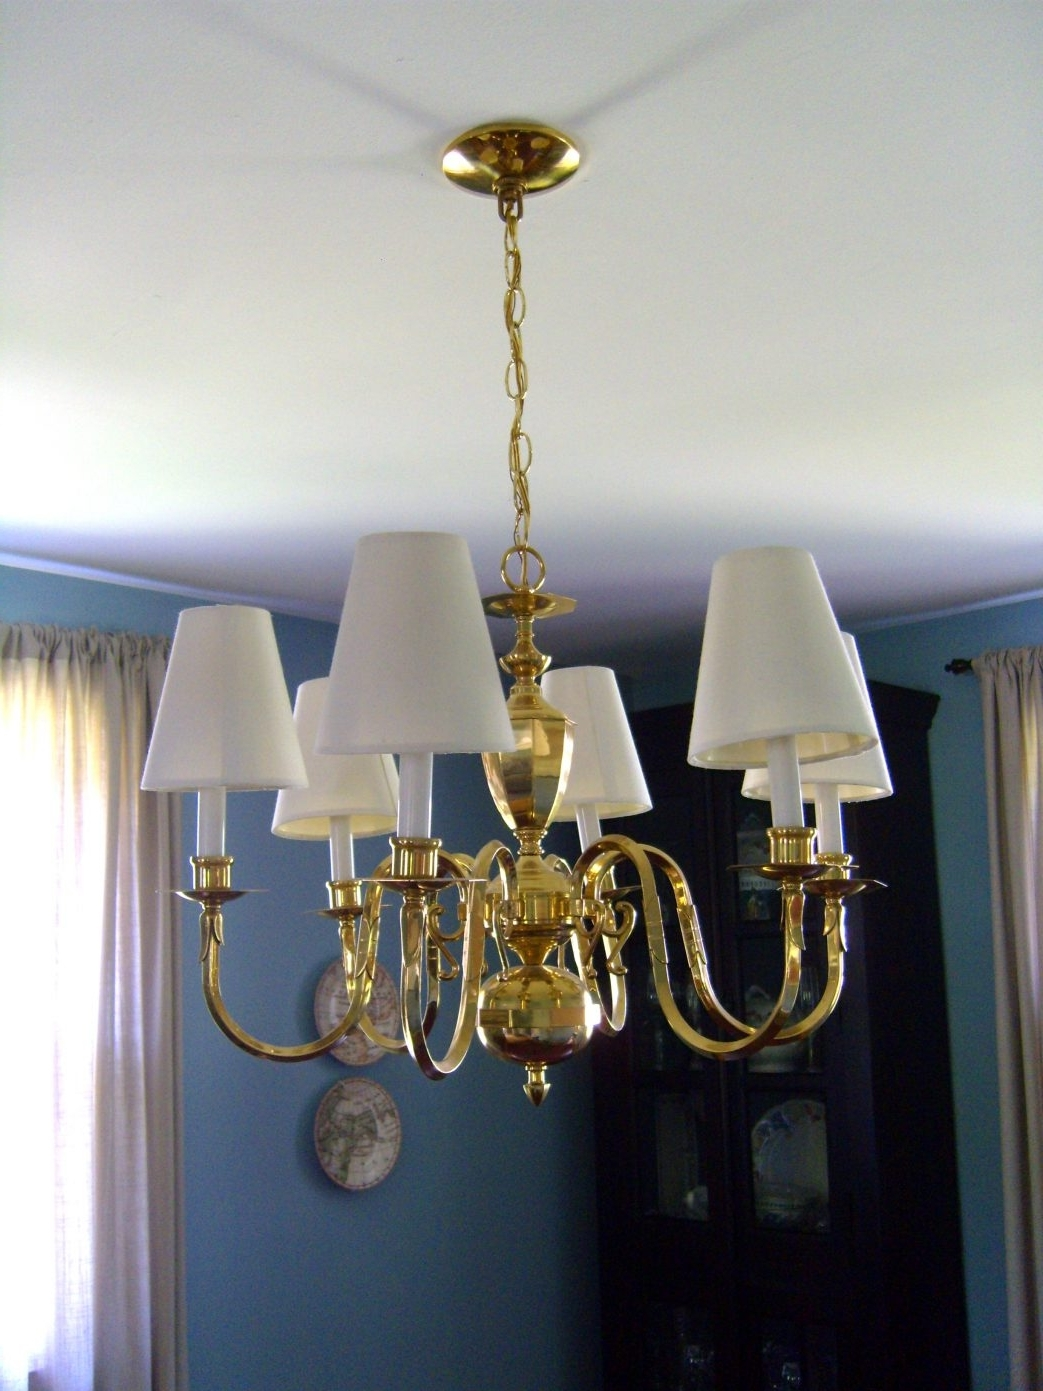 Lampshade Chandeliers Inside Latest Drum Lamp Shades For Chandeliers Large Chandelier Better Lamps (View 6 of 15)